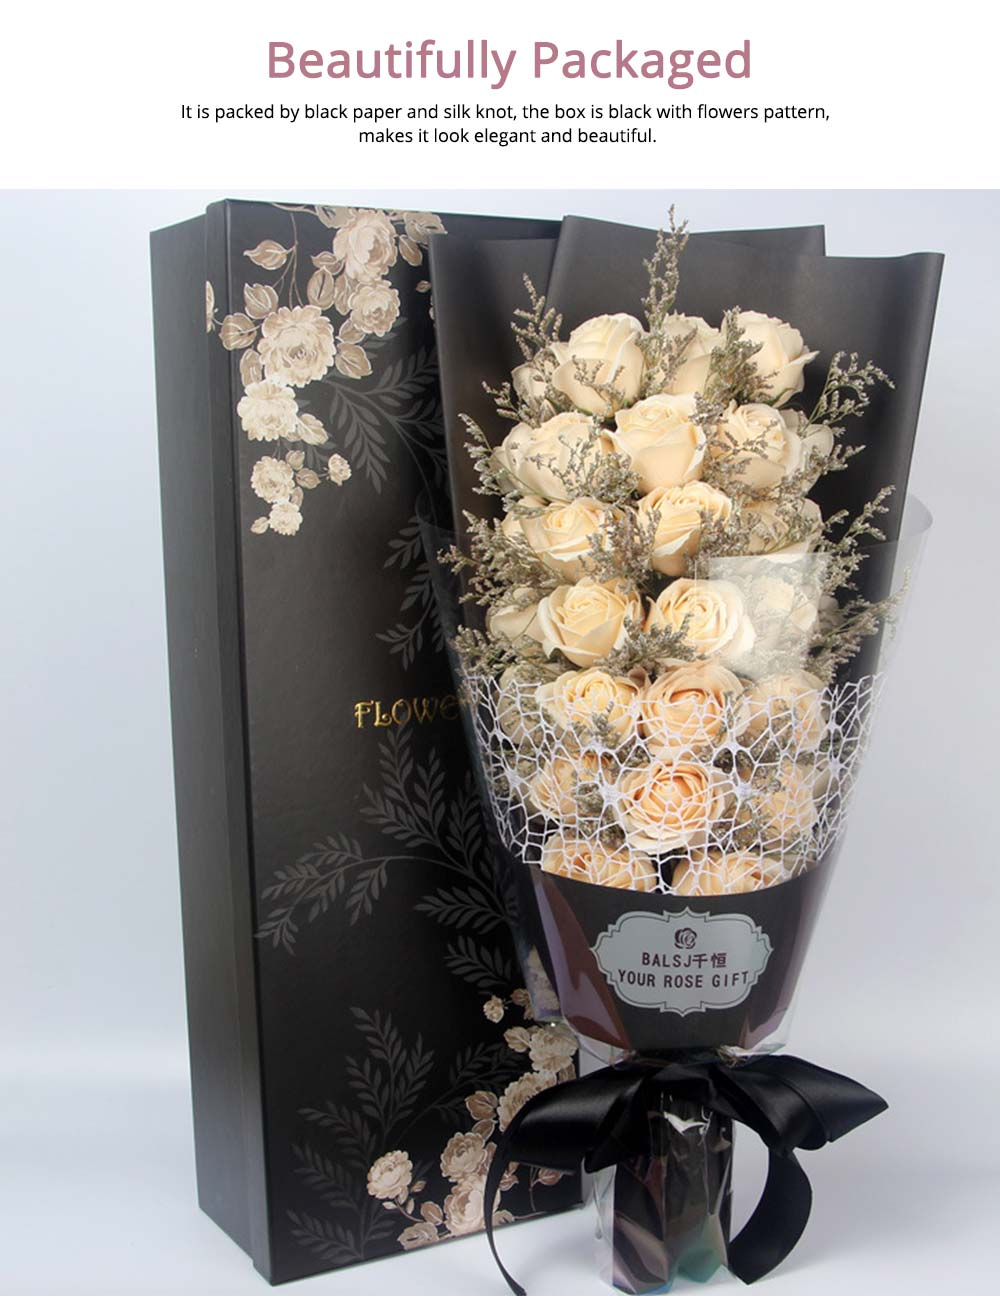 Preserved Fresh Rose with Dry Flower for Valentine's Day, Romantic Rose with Luxurious Gift Box for Girlfriend 5